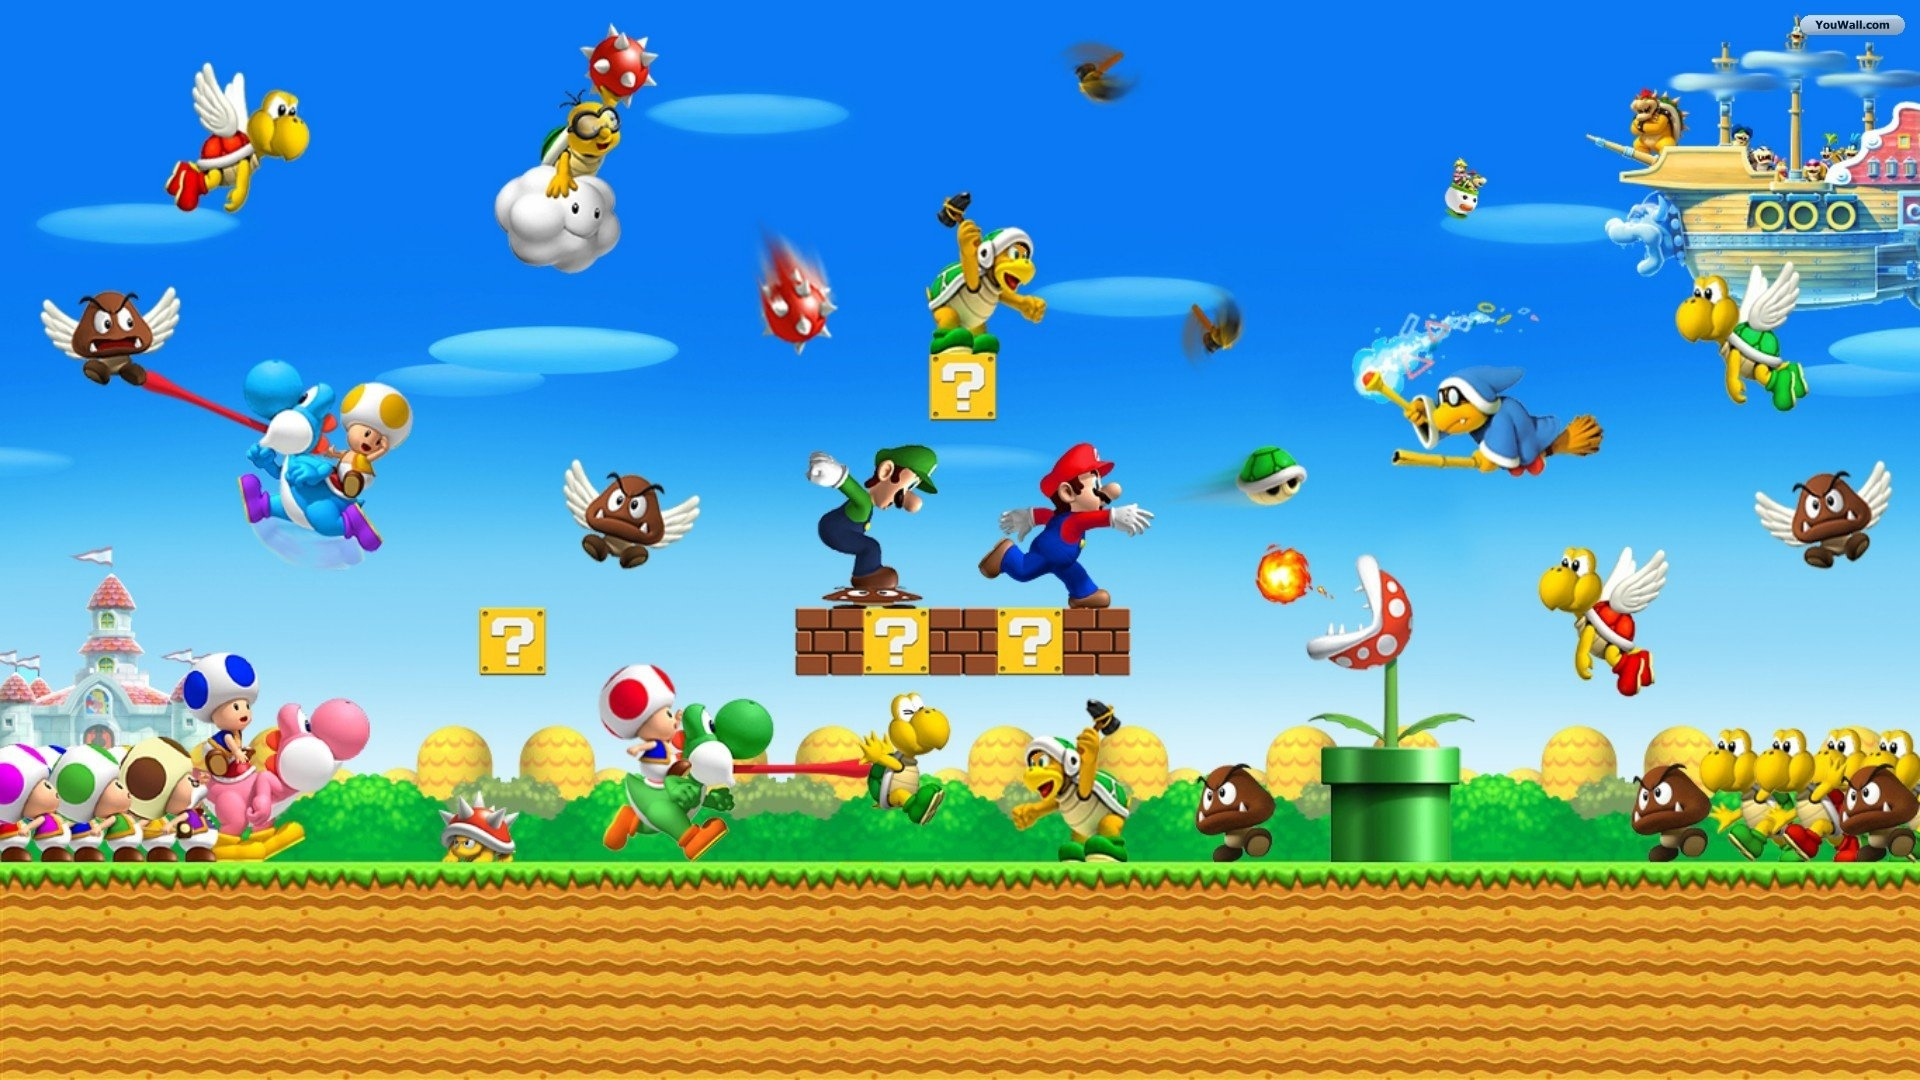 super mario desktop wallpaper |  2013 filed under 1920x1080